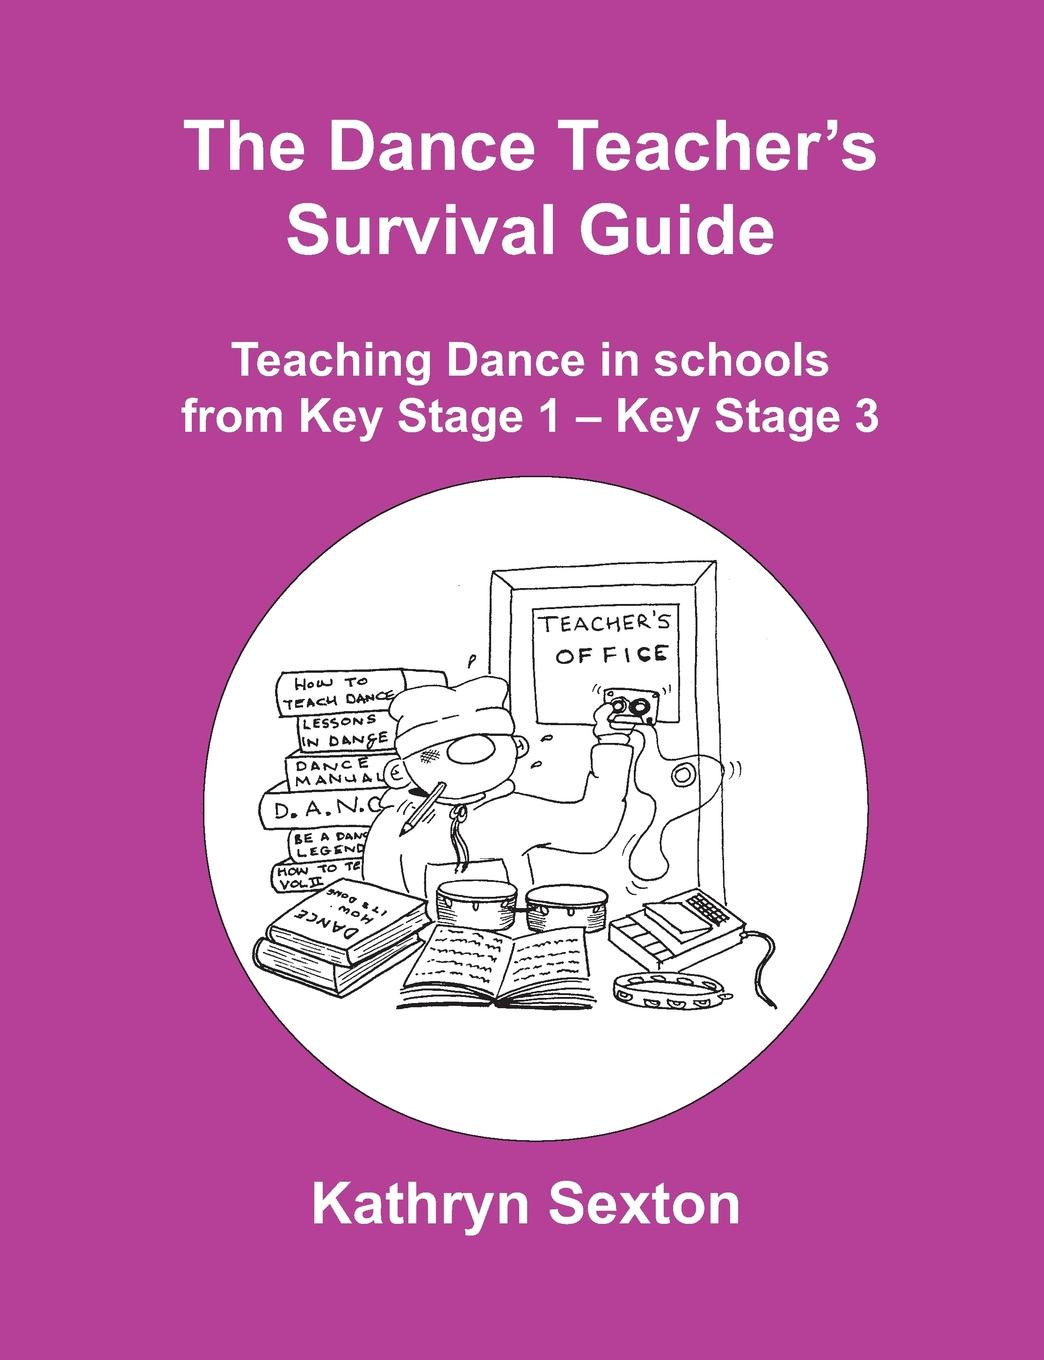 Kathryn Sexton The Dance Teacher's Survival Guide rebecca branstetter the school psychologist s survival guide